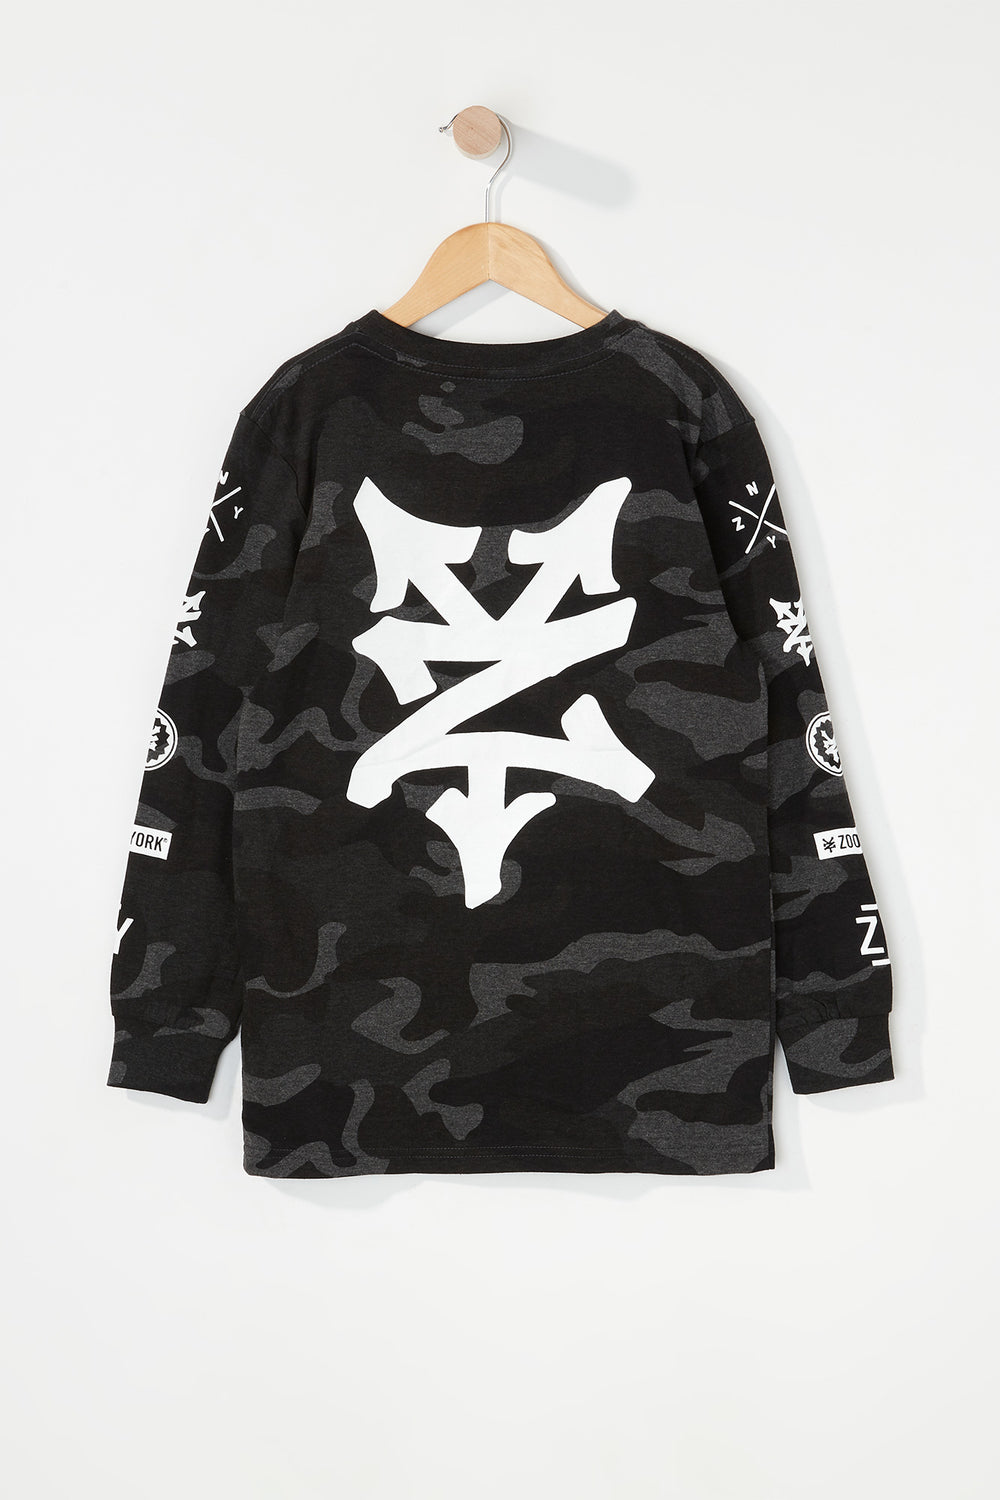 Zoo York Boys Camo Long Sleeve Shirt Black with White